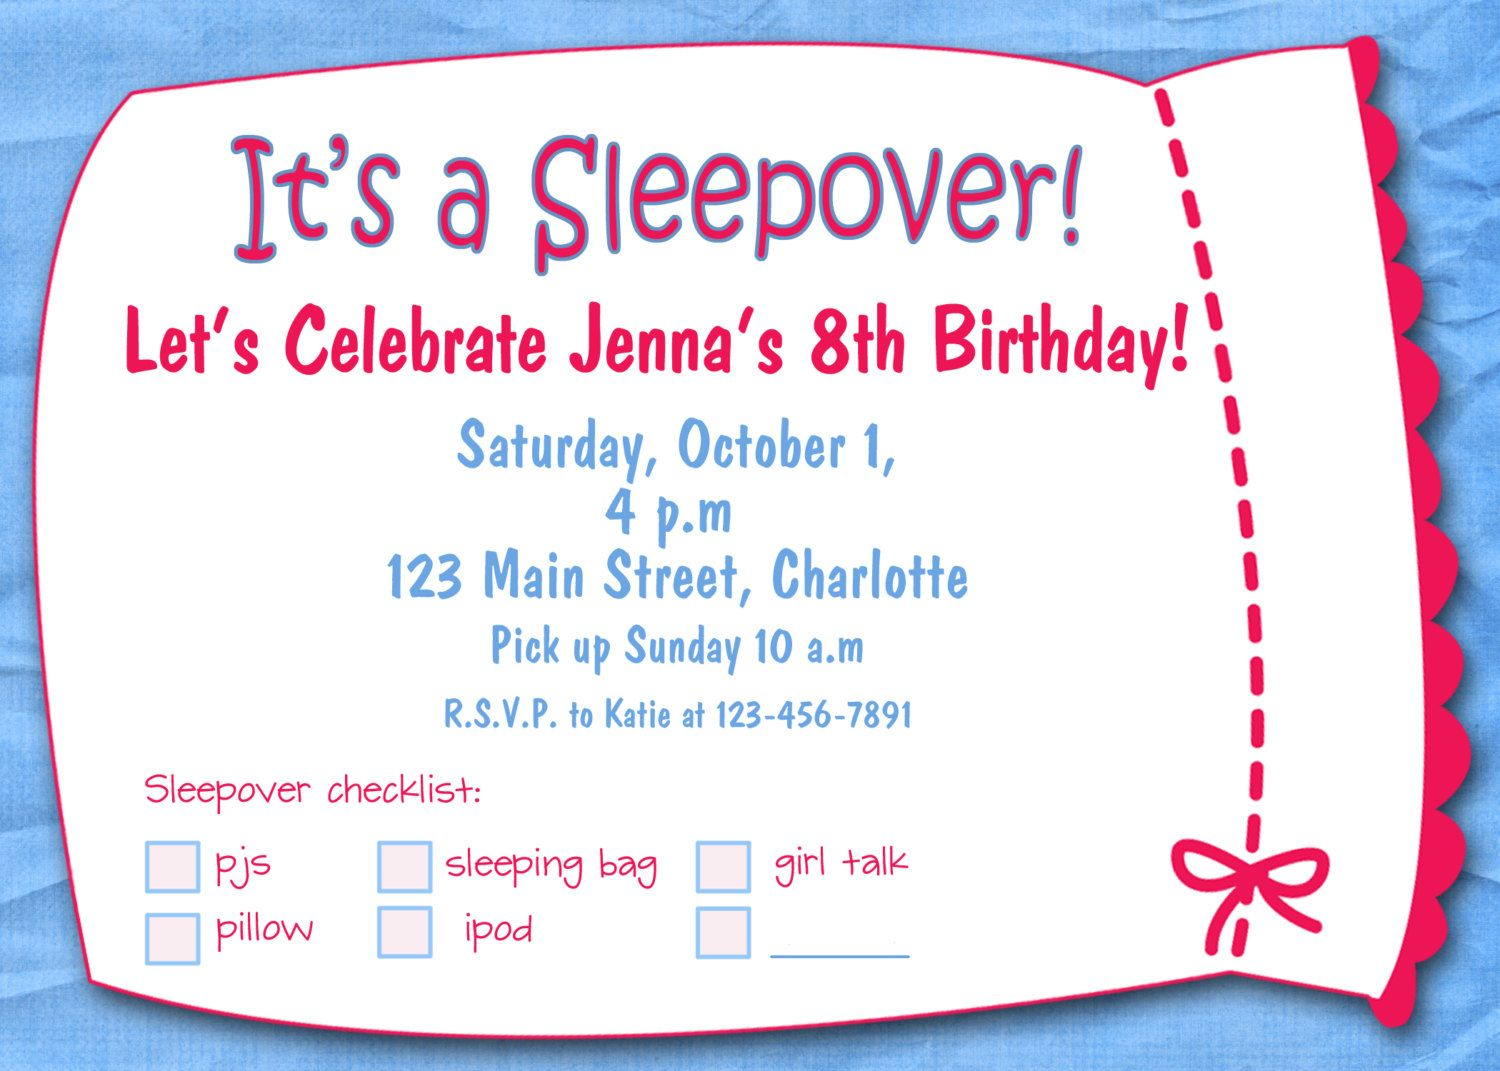 Free Printable Pajama Party Invitations   Invitation Templates DesignSearch  Results For U201cfree Printable Pajama Party  Birthday Invitation Template Printable